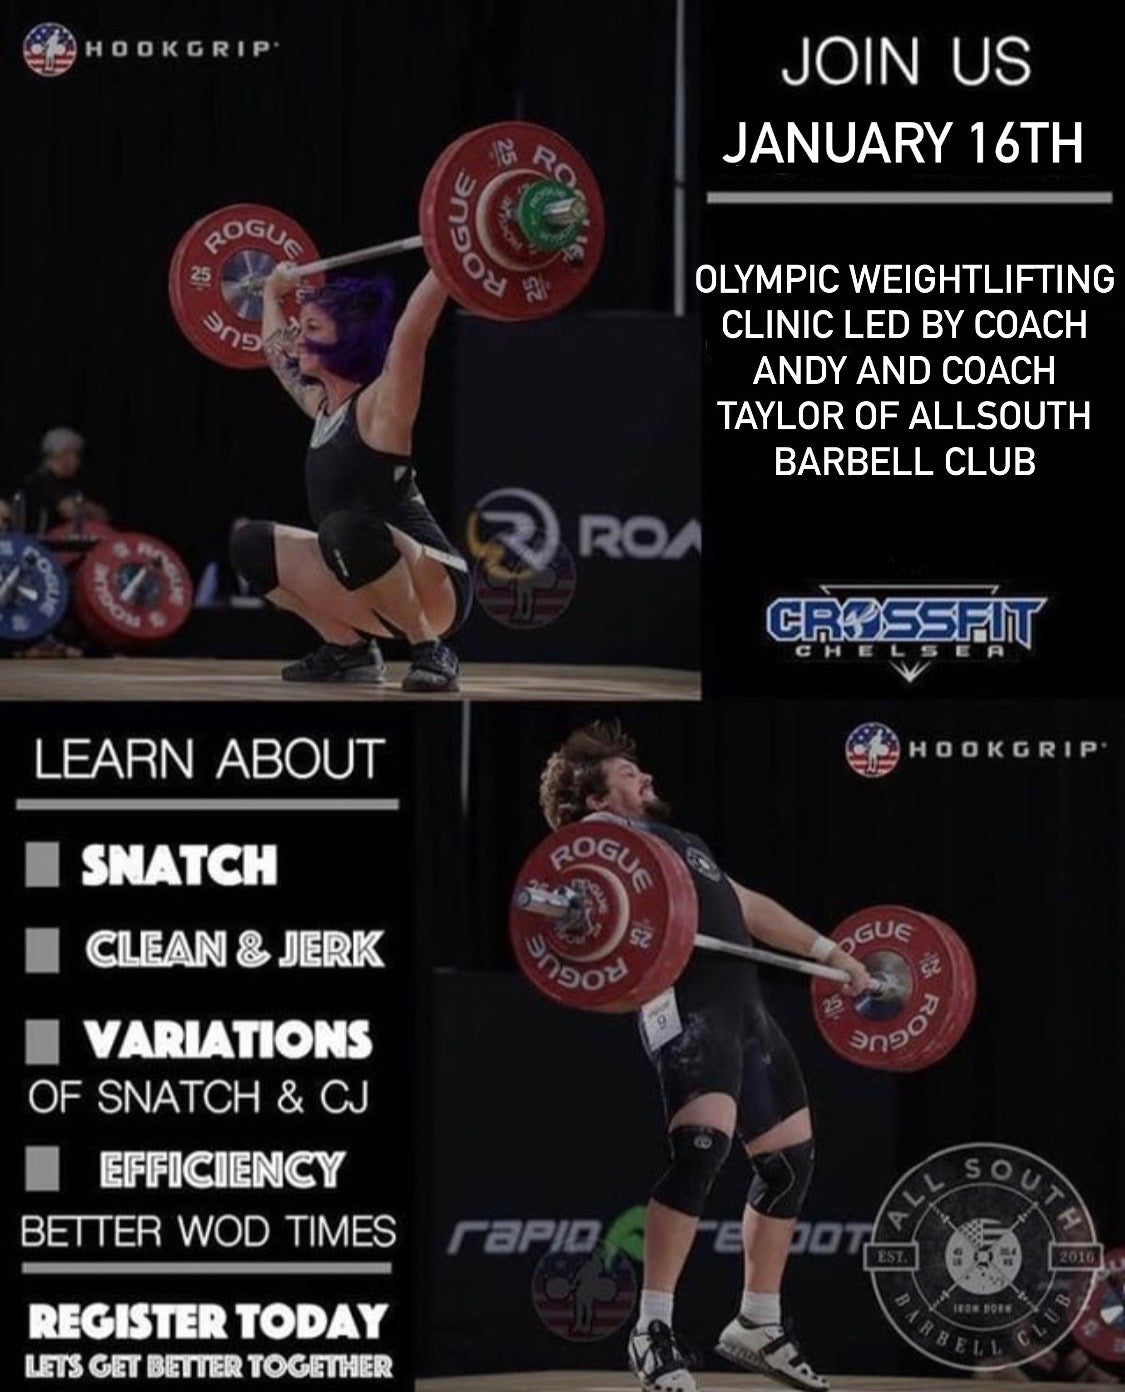 CrossFit Chelsea Weightlifting Clinic